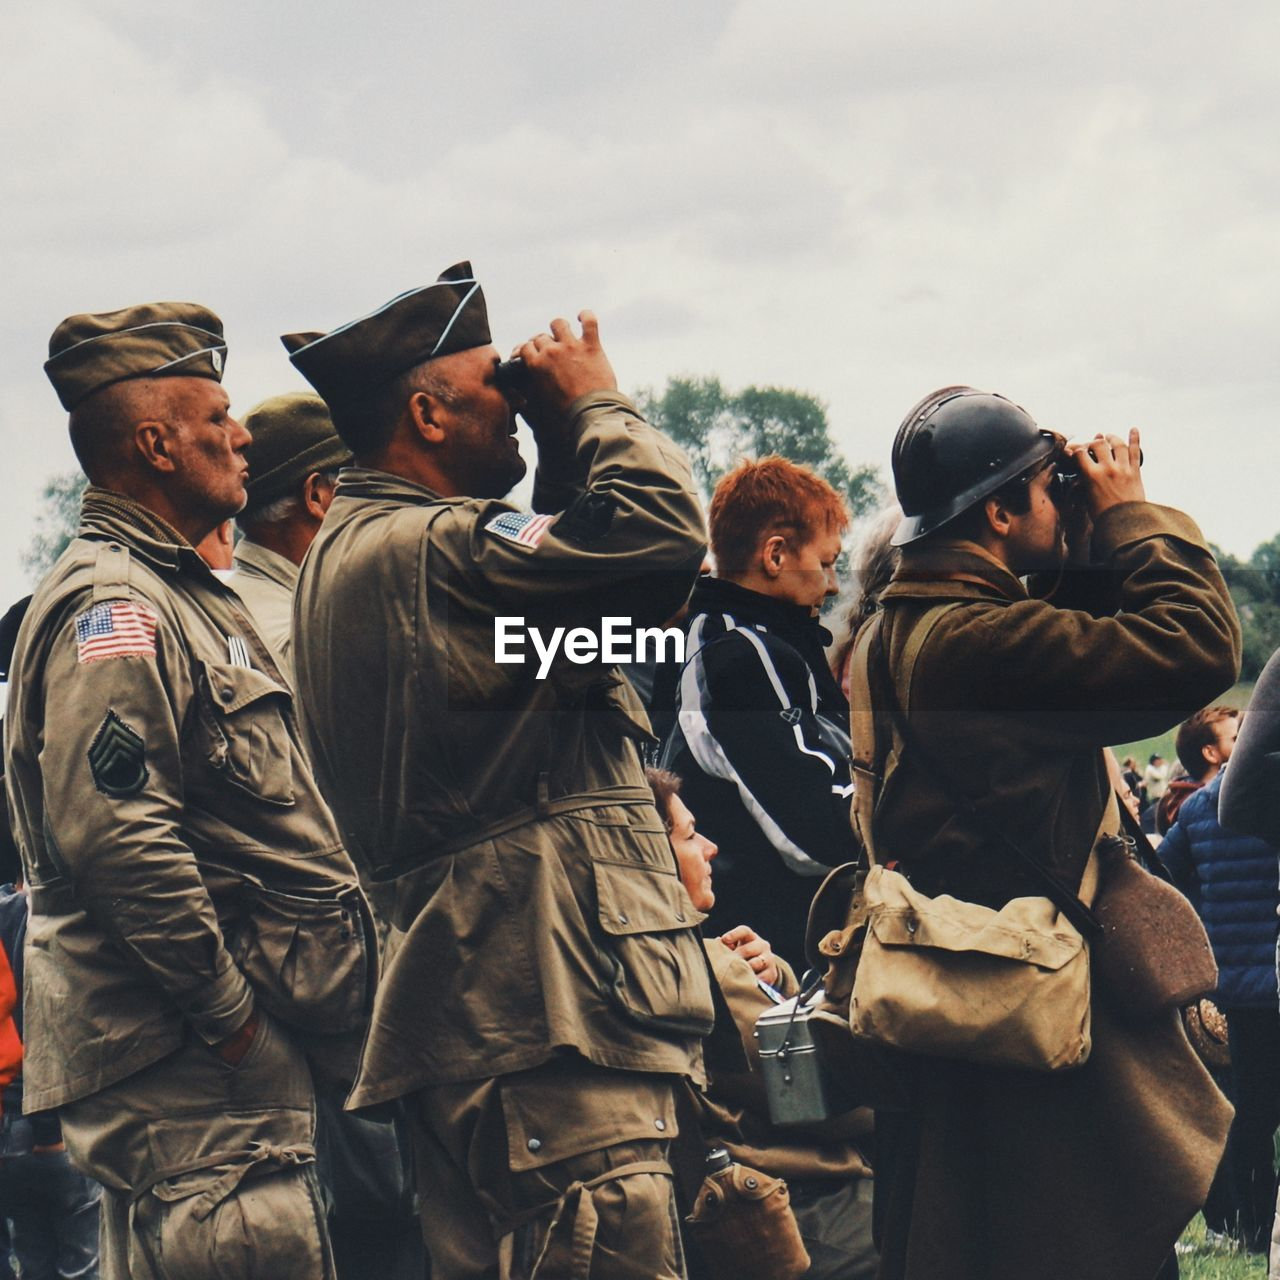 group of people, clothing, real people, togetherness, day, men, people, uniform, friendship, sky, military, group, standing, medium group of people, government, nature, lifestyles, outdoors, young men, military uniform, warm clothing